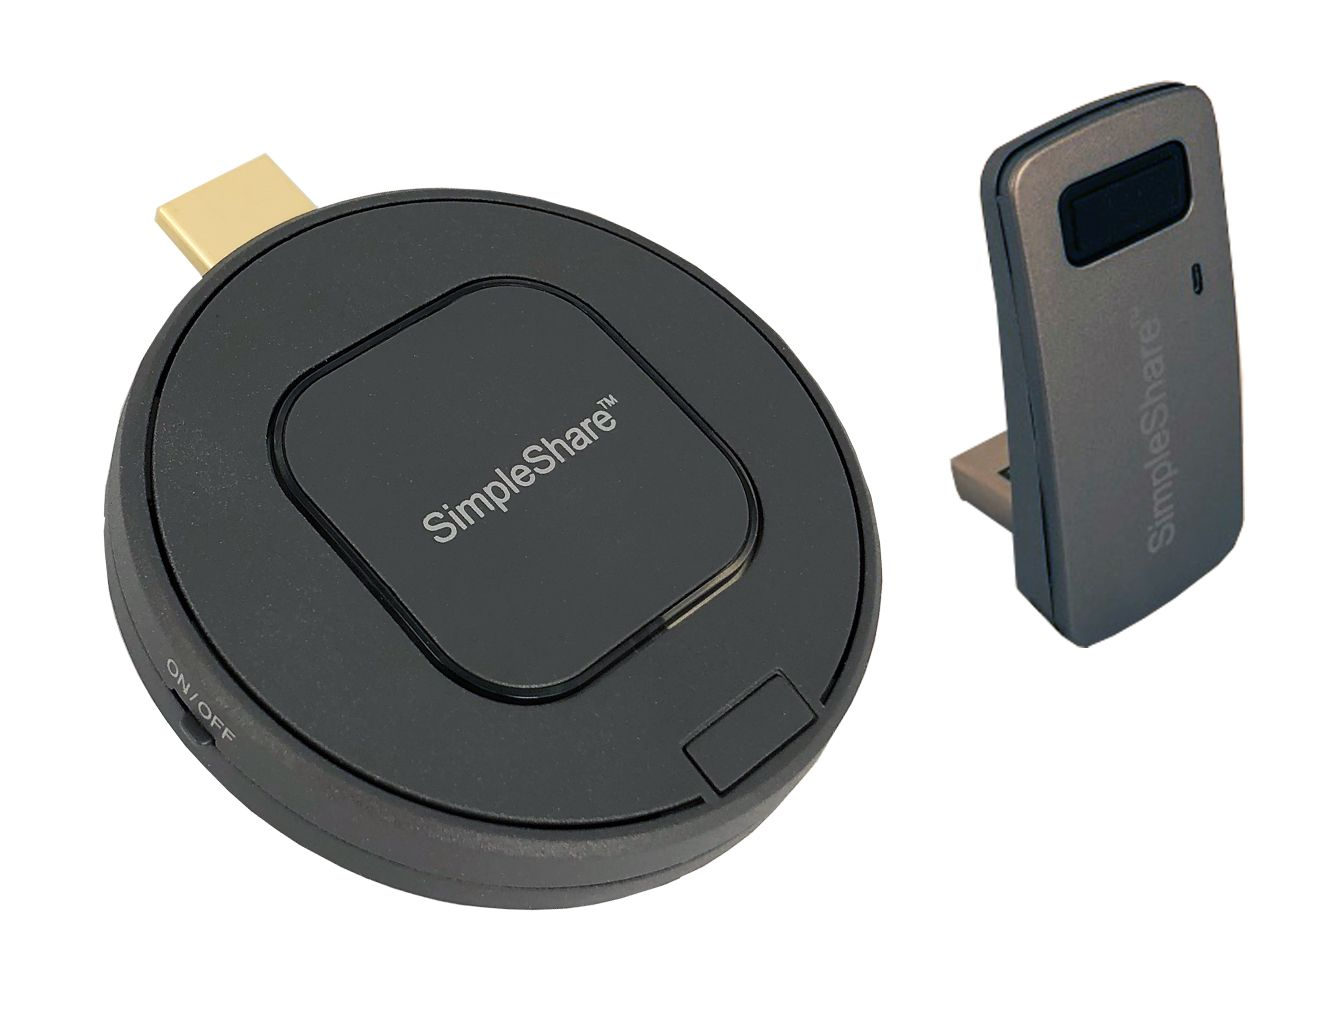 INFOCUS SimpleShare Wireless Transmitter with Paired USB Touch Adapter - Trådløs video/lyd/USB-forlenger - 802.11n, WiFi - opp til 15 m - for P/N: INA-SIMINT1 (INA-SIMTTM1)